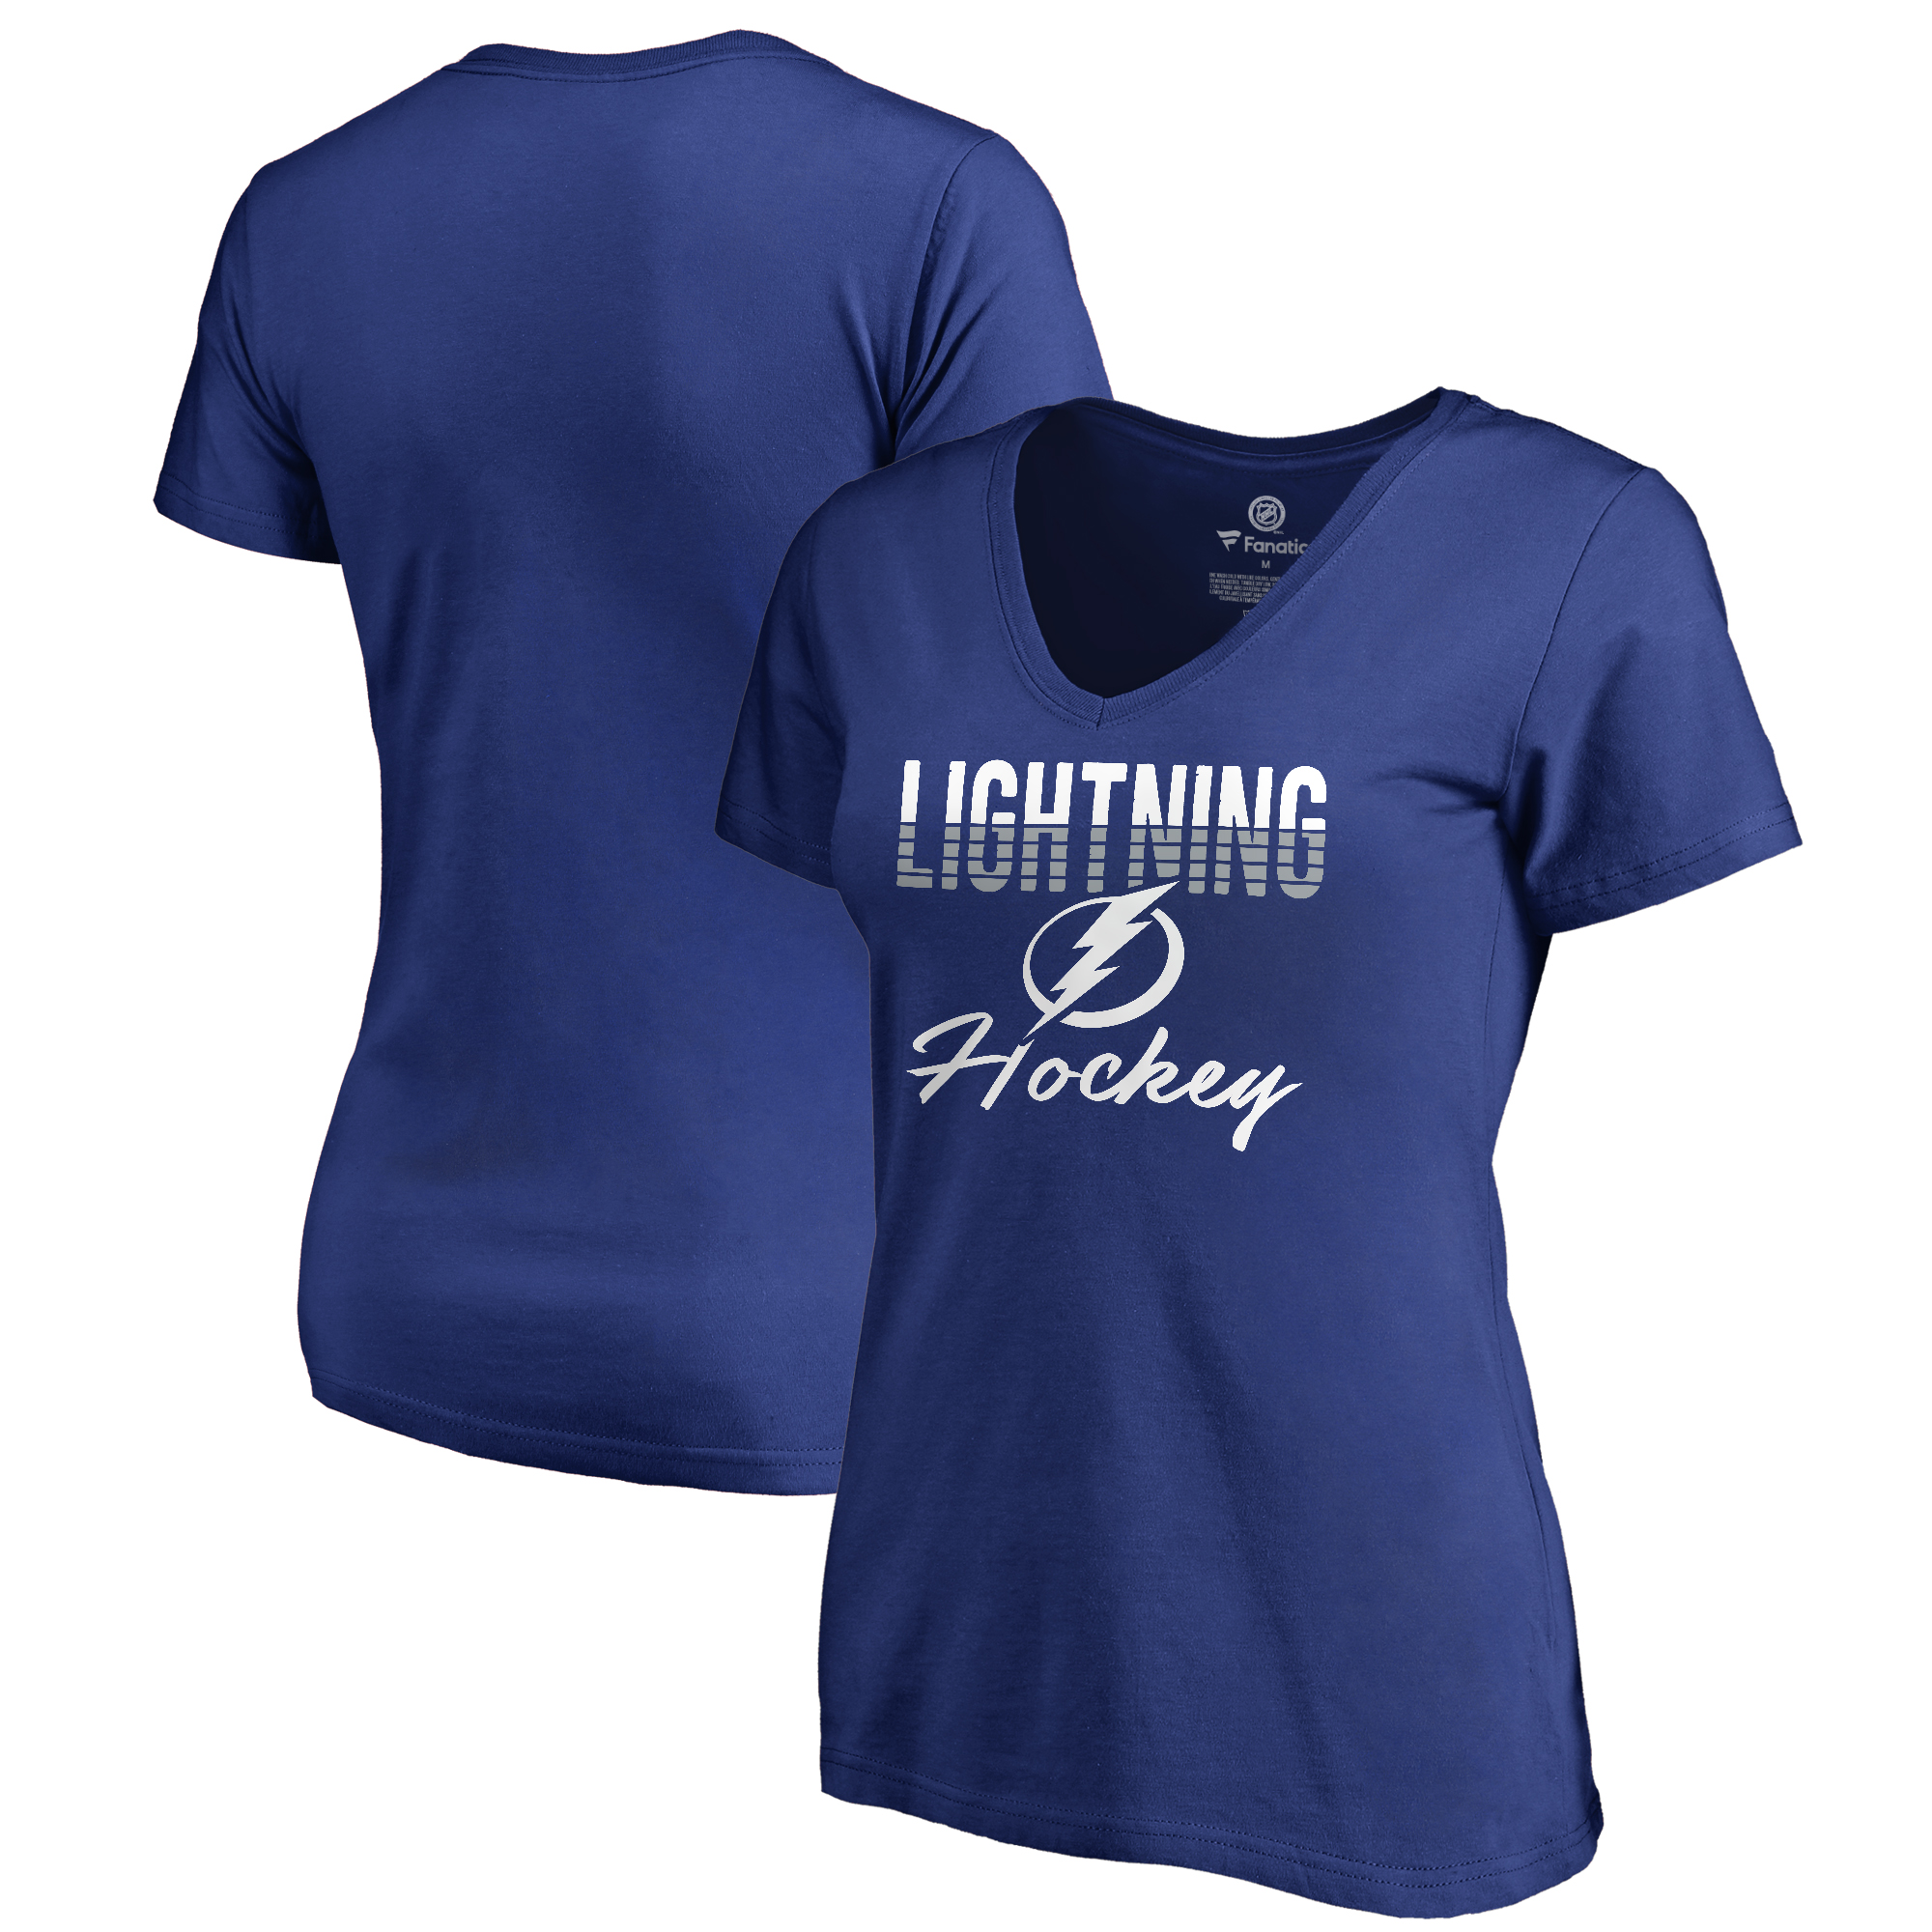 Tampa Bay Lightning Fanatics Branded Women's Freeline Plus Size V-Neck T-Shirt - Royal